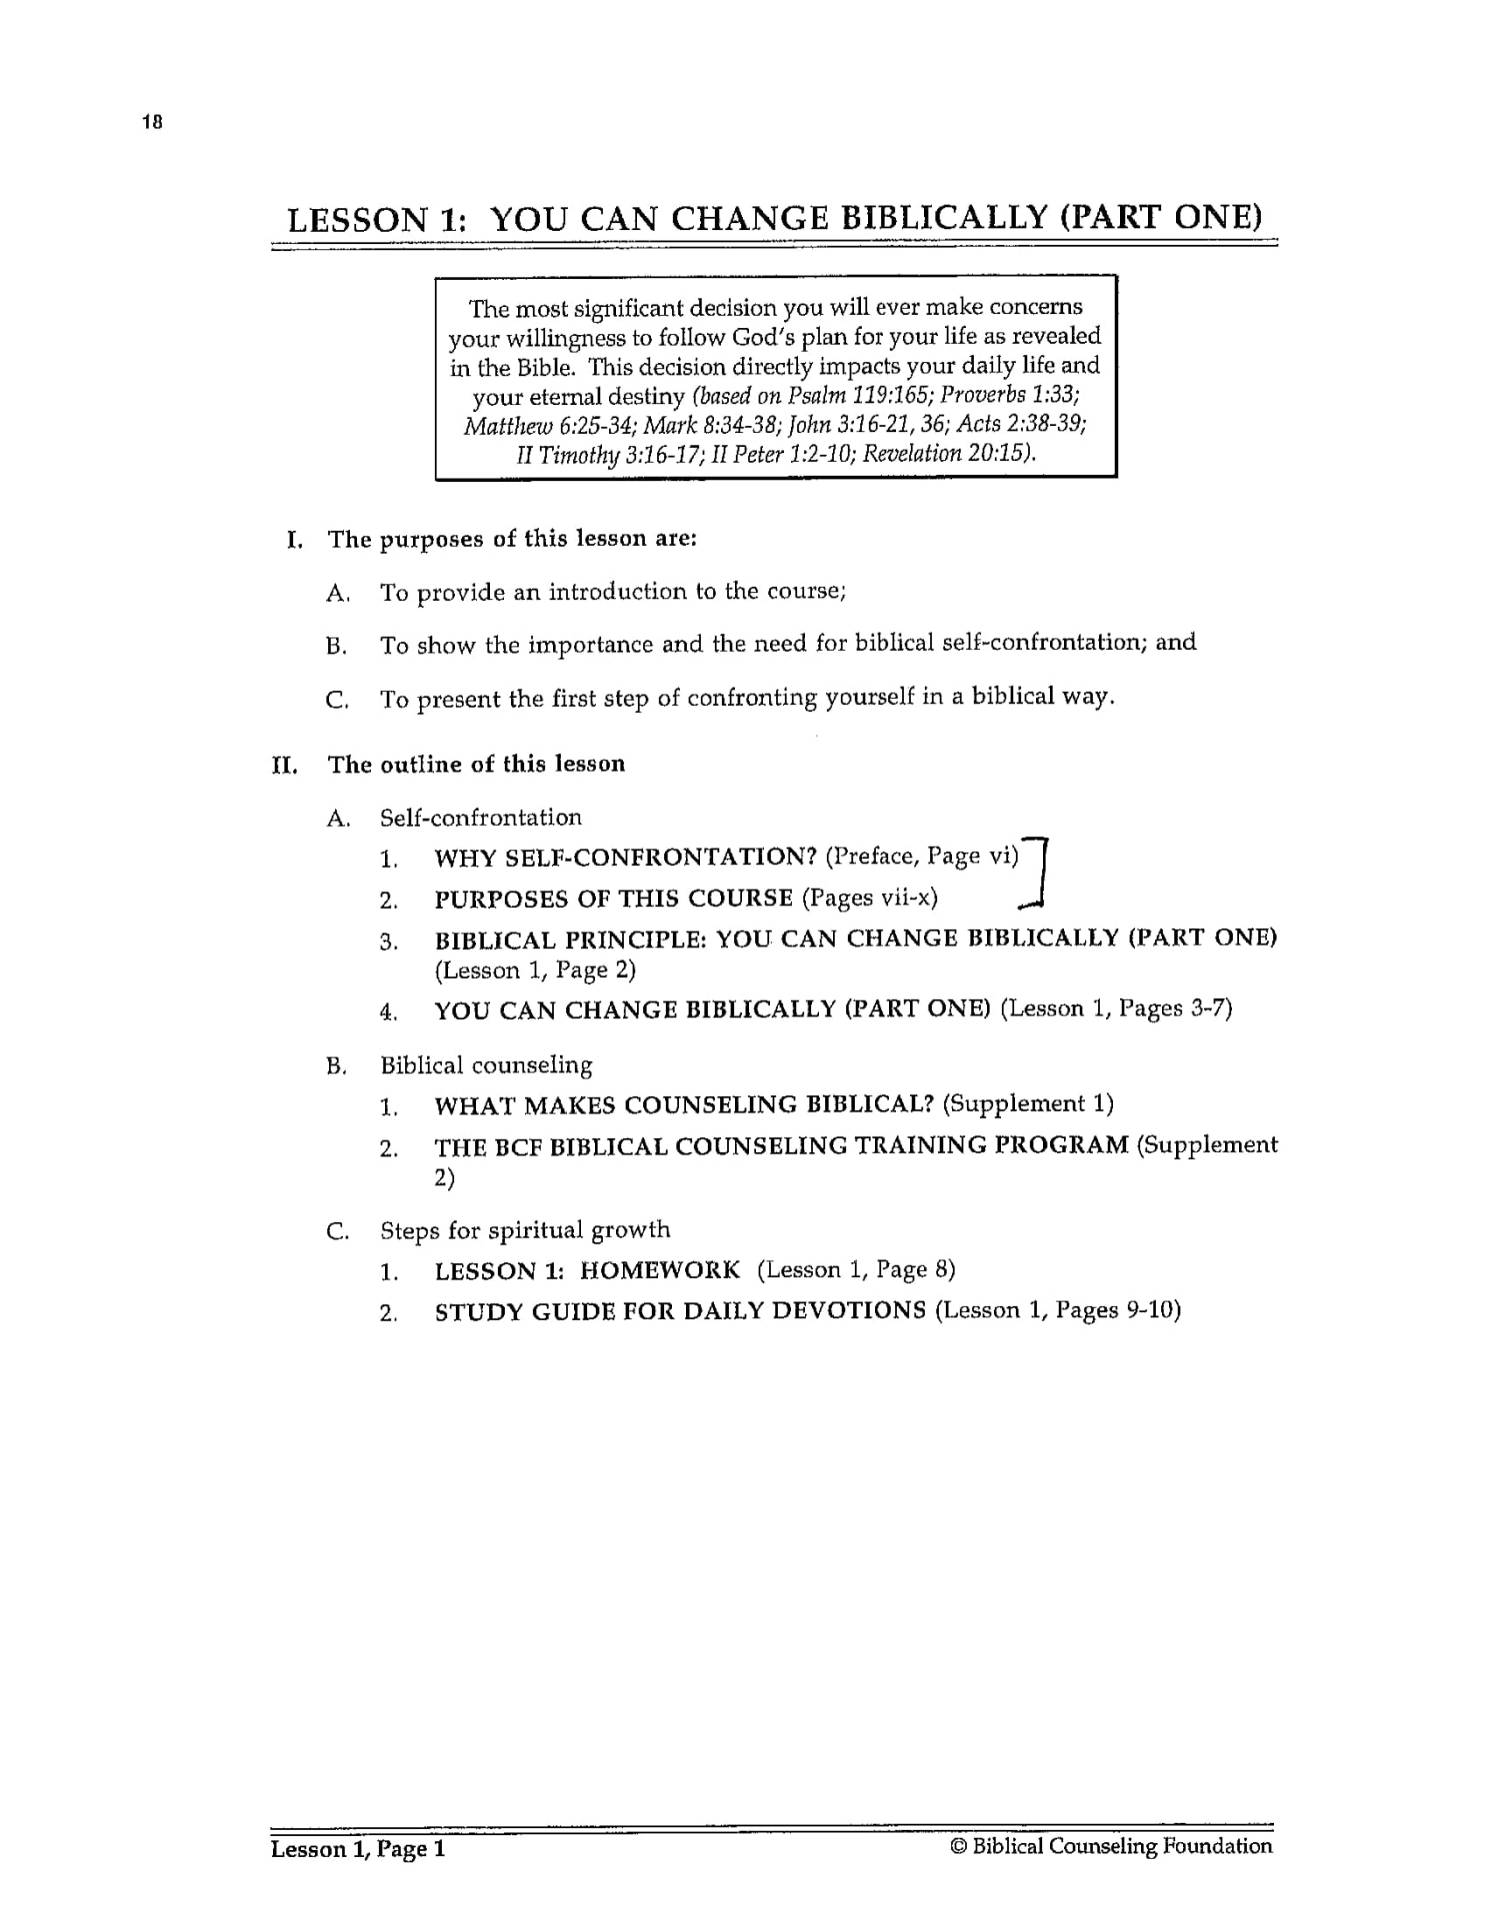 BC&D-02 - Lesson 1 - You Can Change Biblically 1 Work Book Page-02